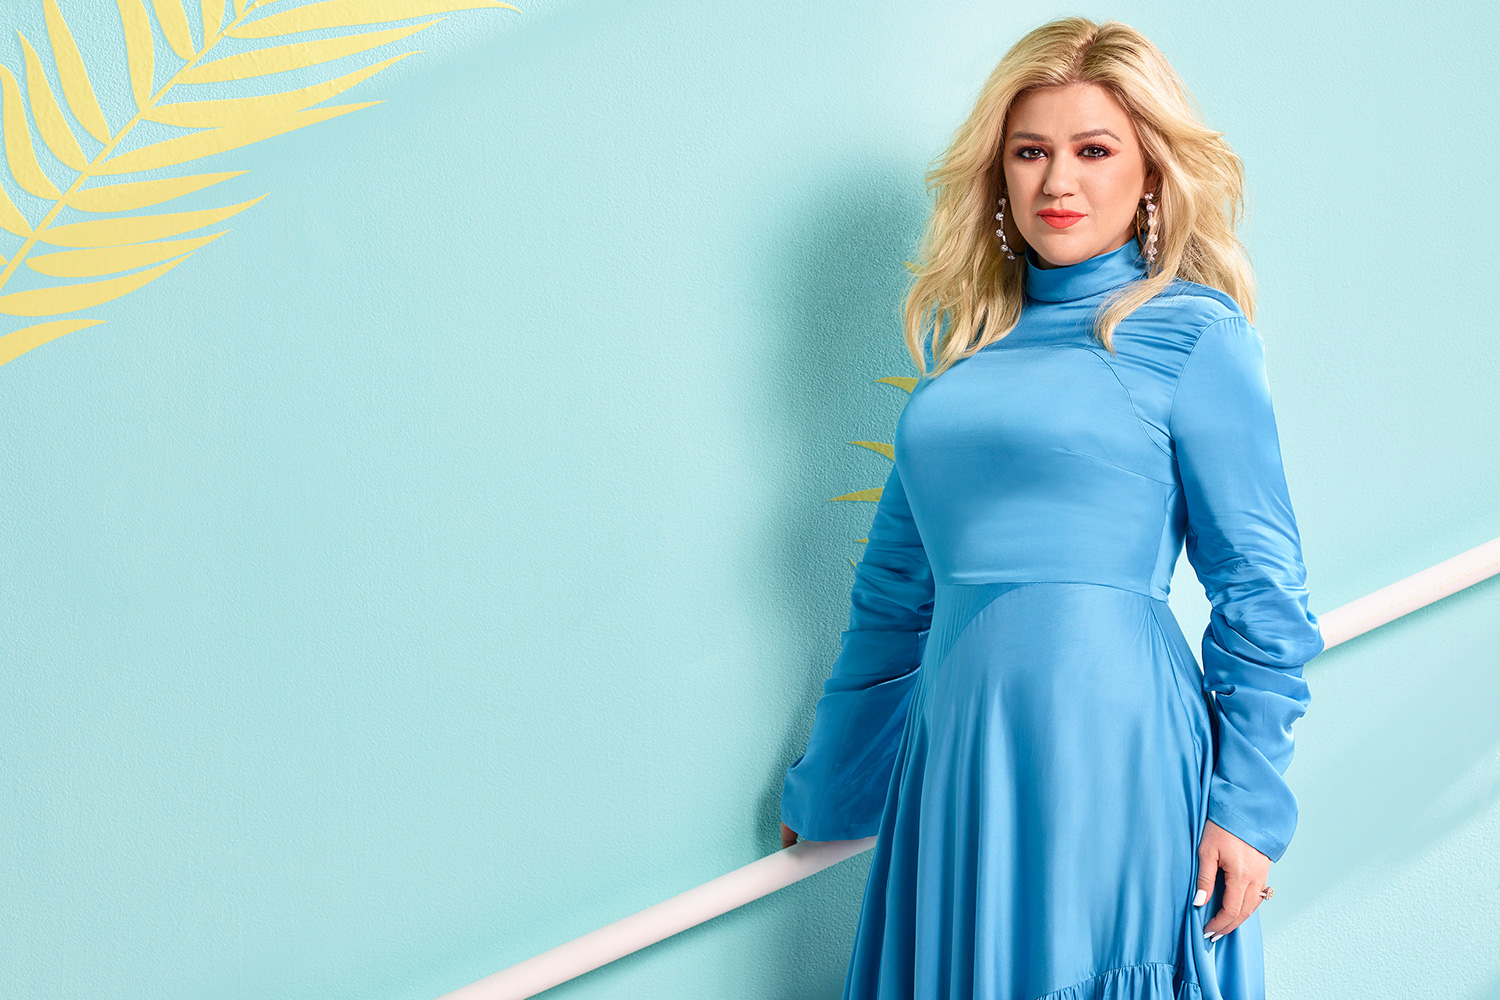 Kelly Clarkson Jokes That New Voice Promo Picture Makes It Look as If She's Had a 'Boob Job'